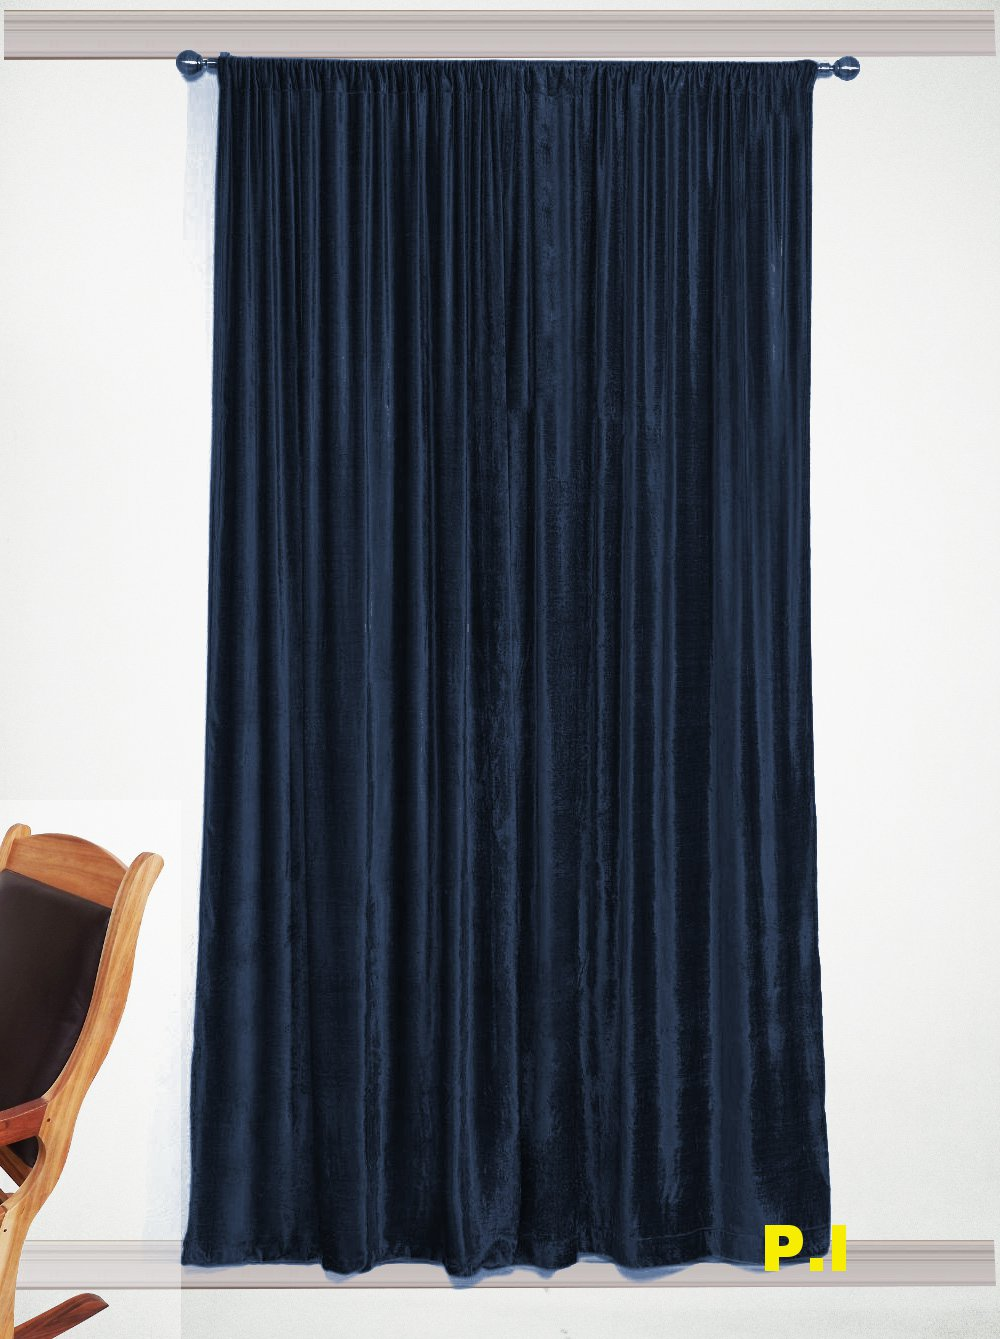 """New Blackout 100% Cotton Velvet Curtain Single Lined Panel 54""""W by 108""""H -Navy Blue"""